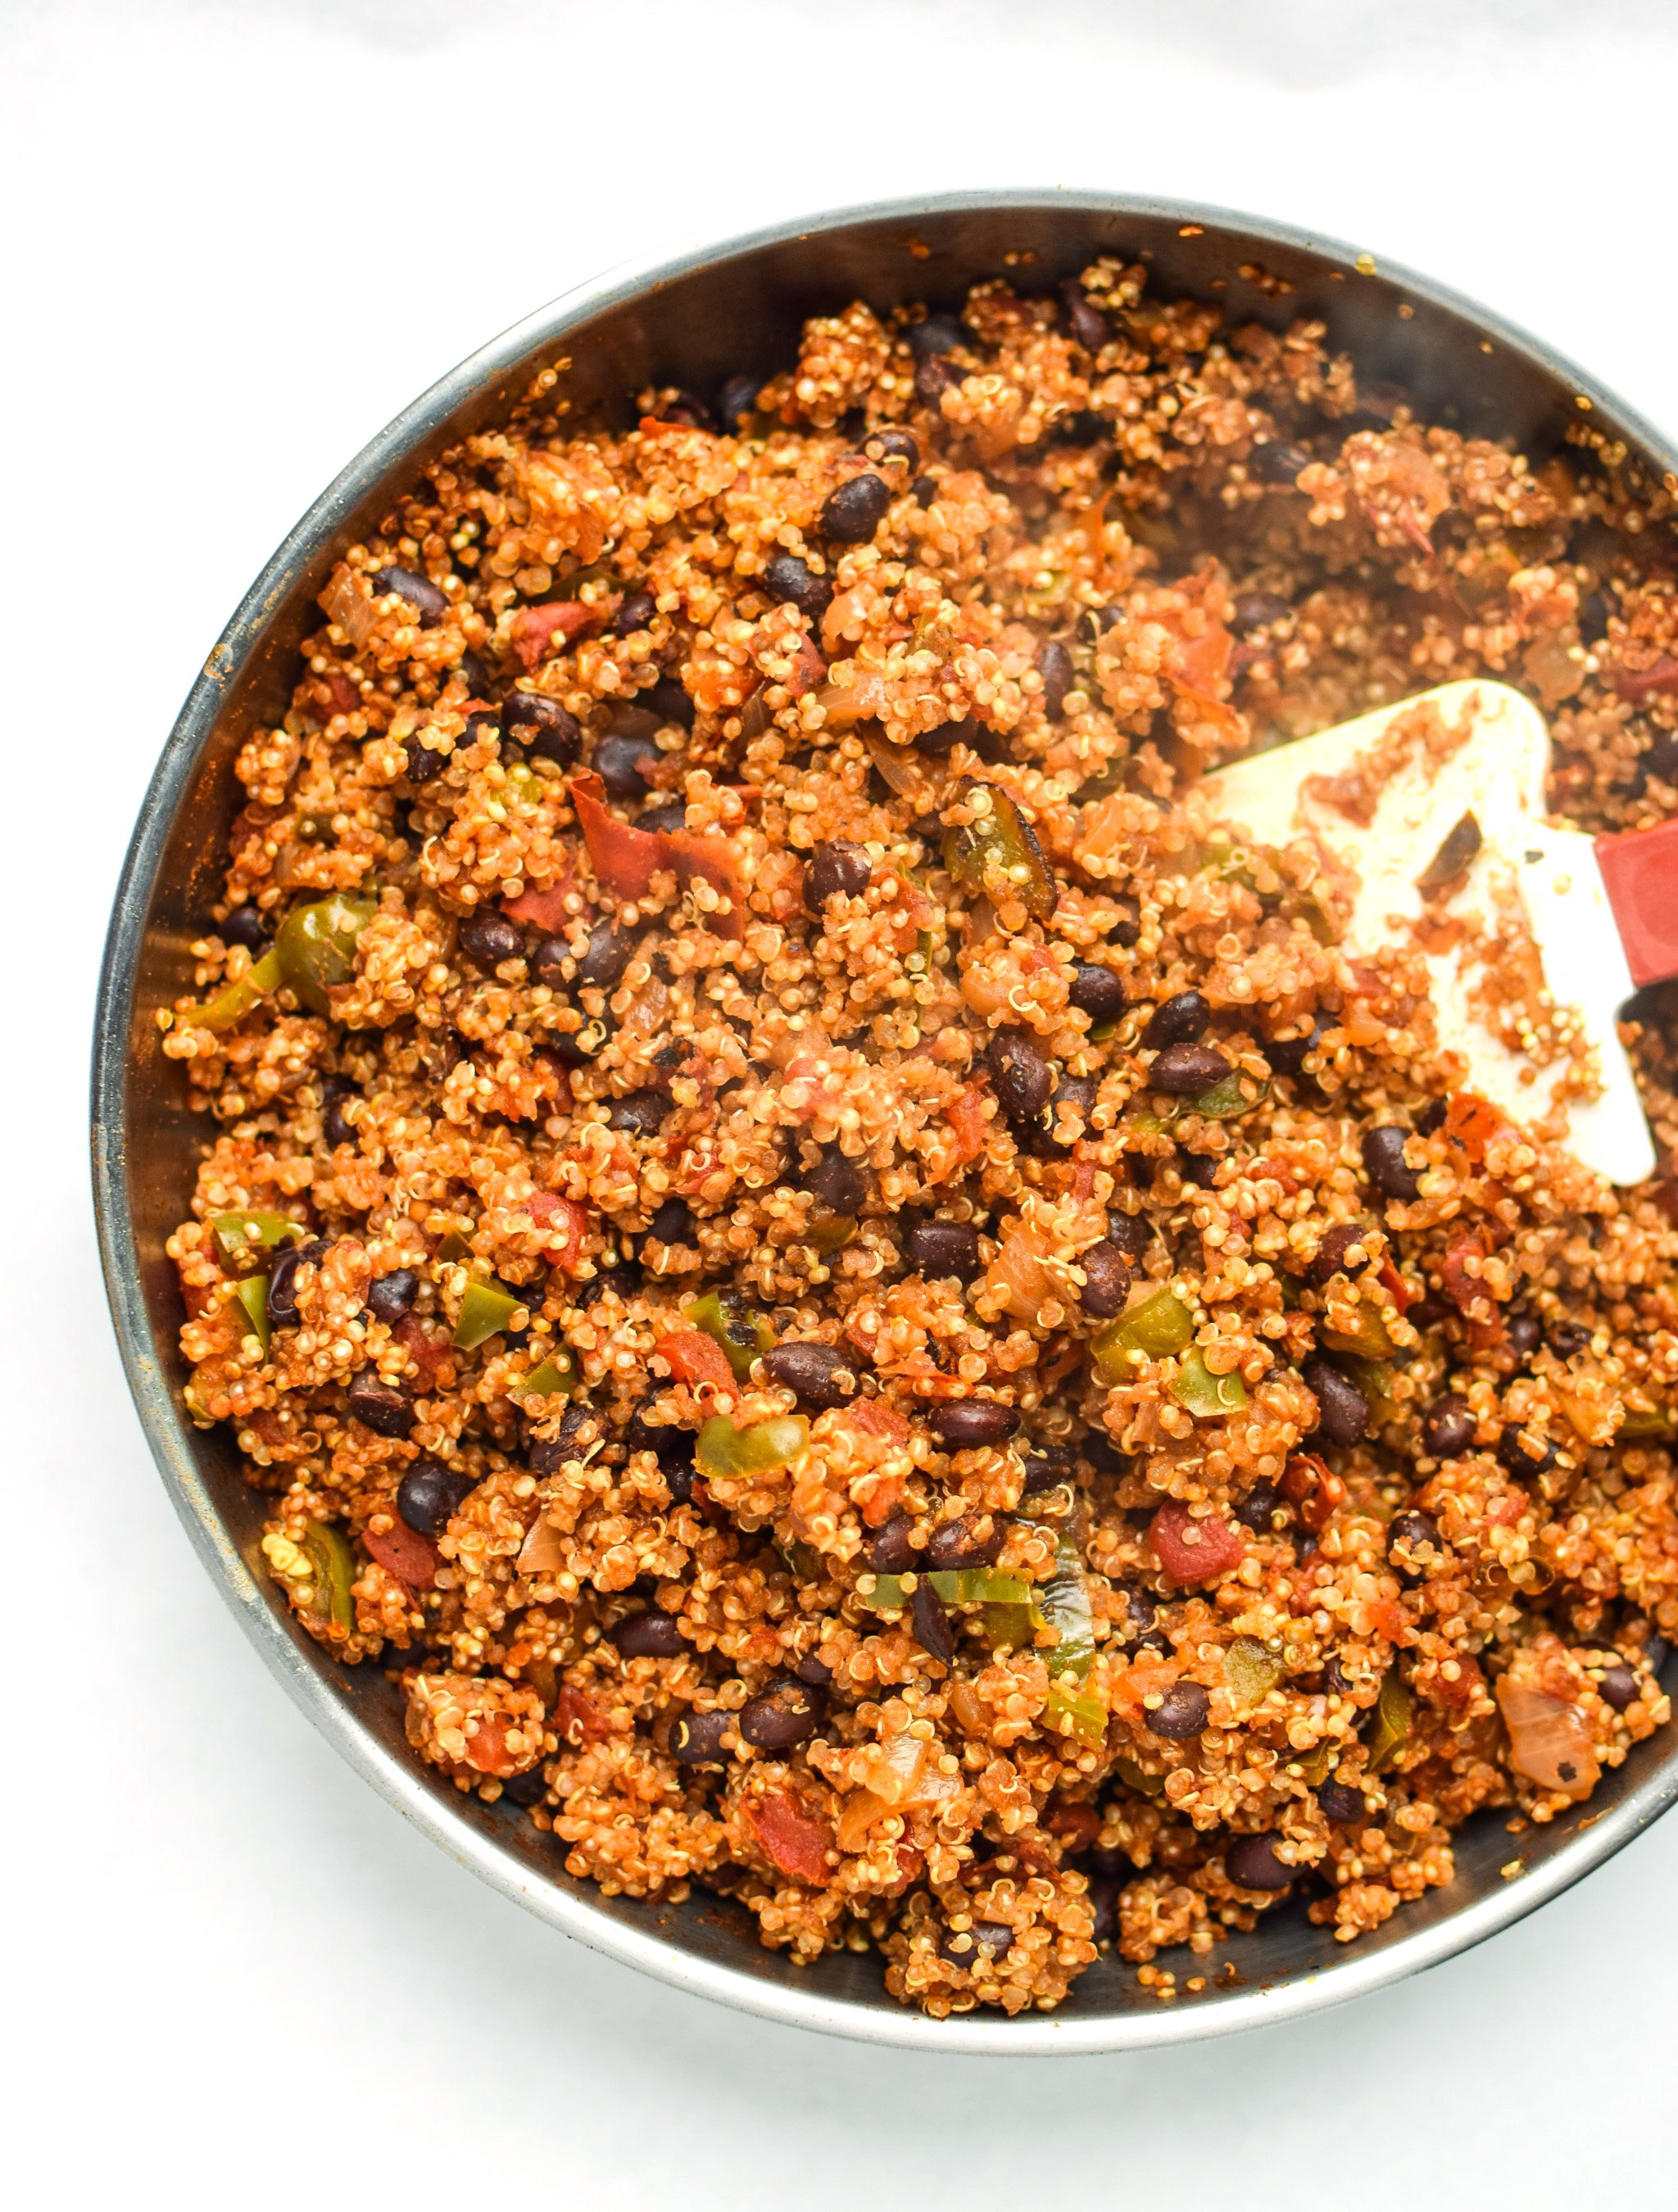 An overhead view of a skillet of cooked mexican quinoa with fire roasted tomatoes, peppers and onions.